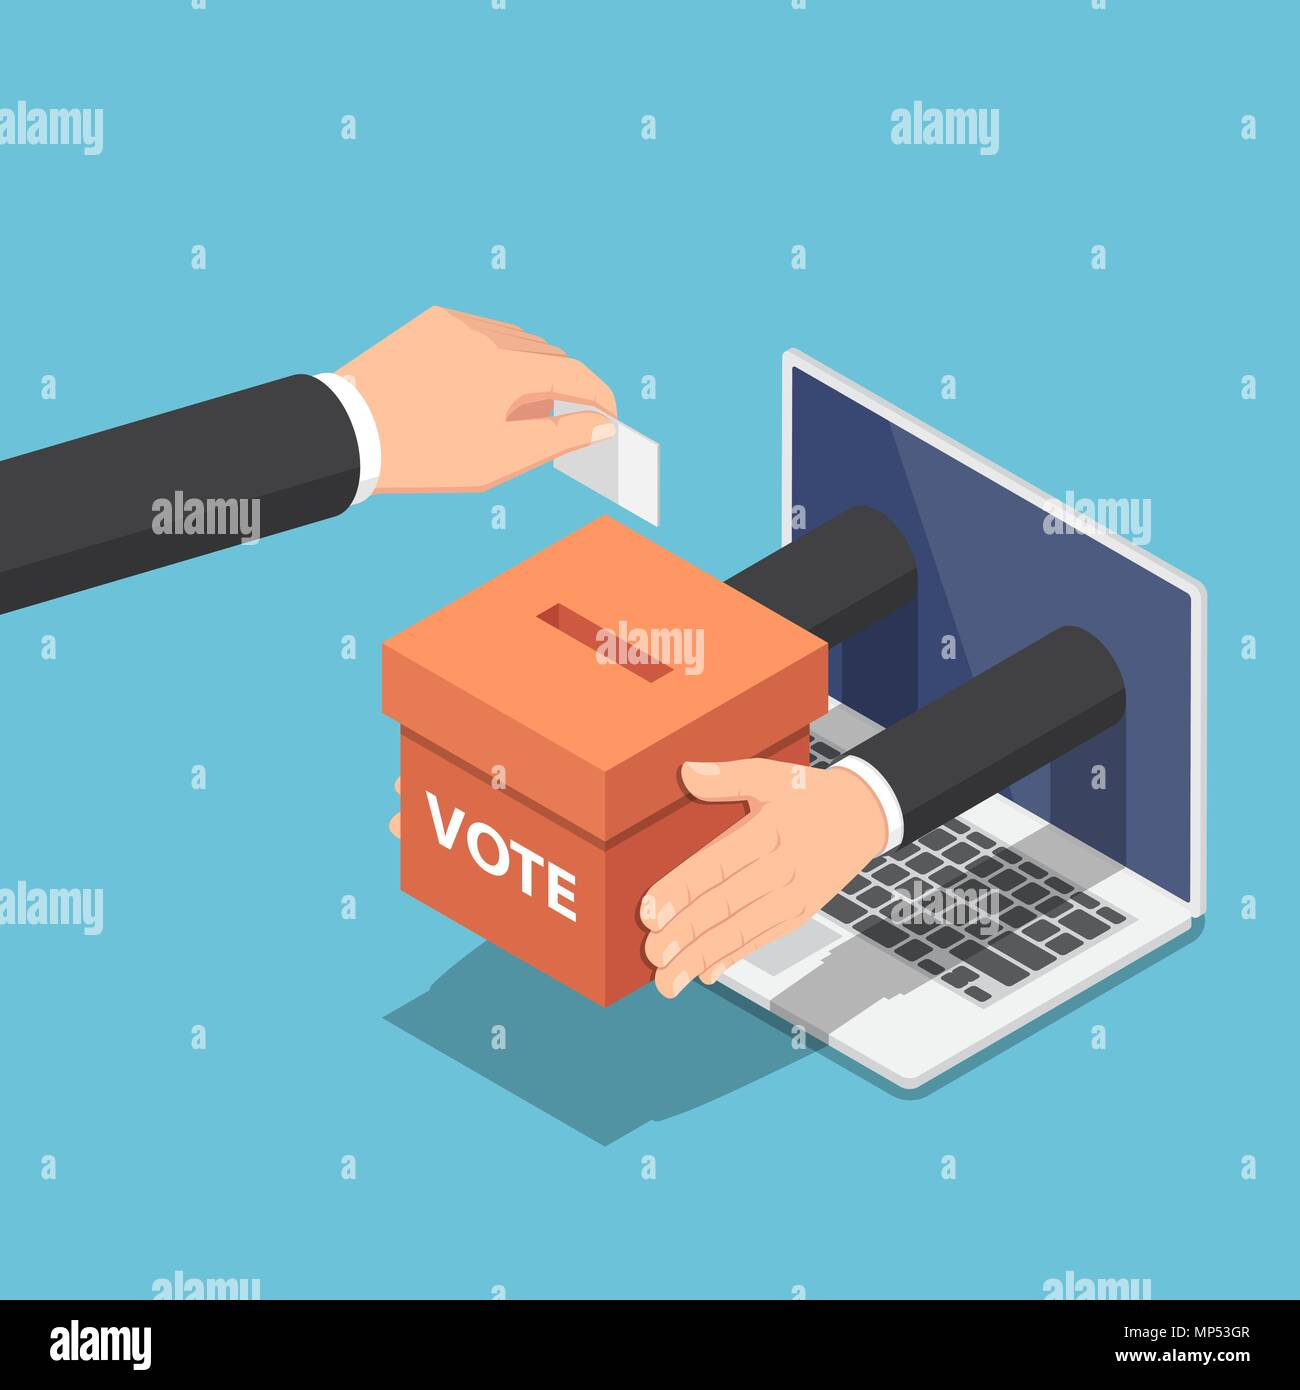 Online Voting Stock Photos & Online Voting Stock Images - Alamy